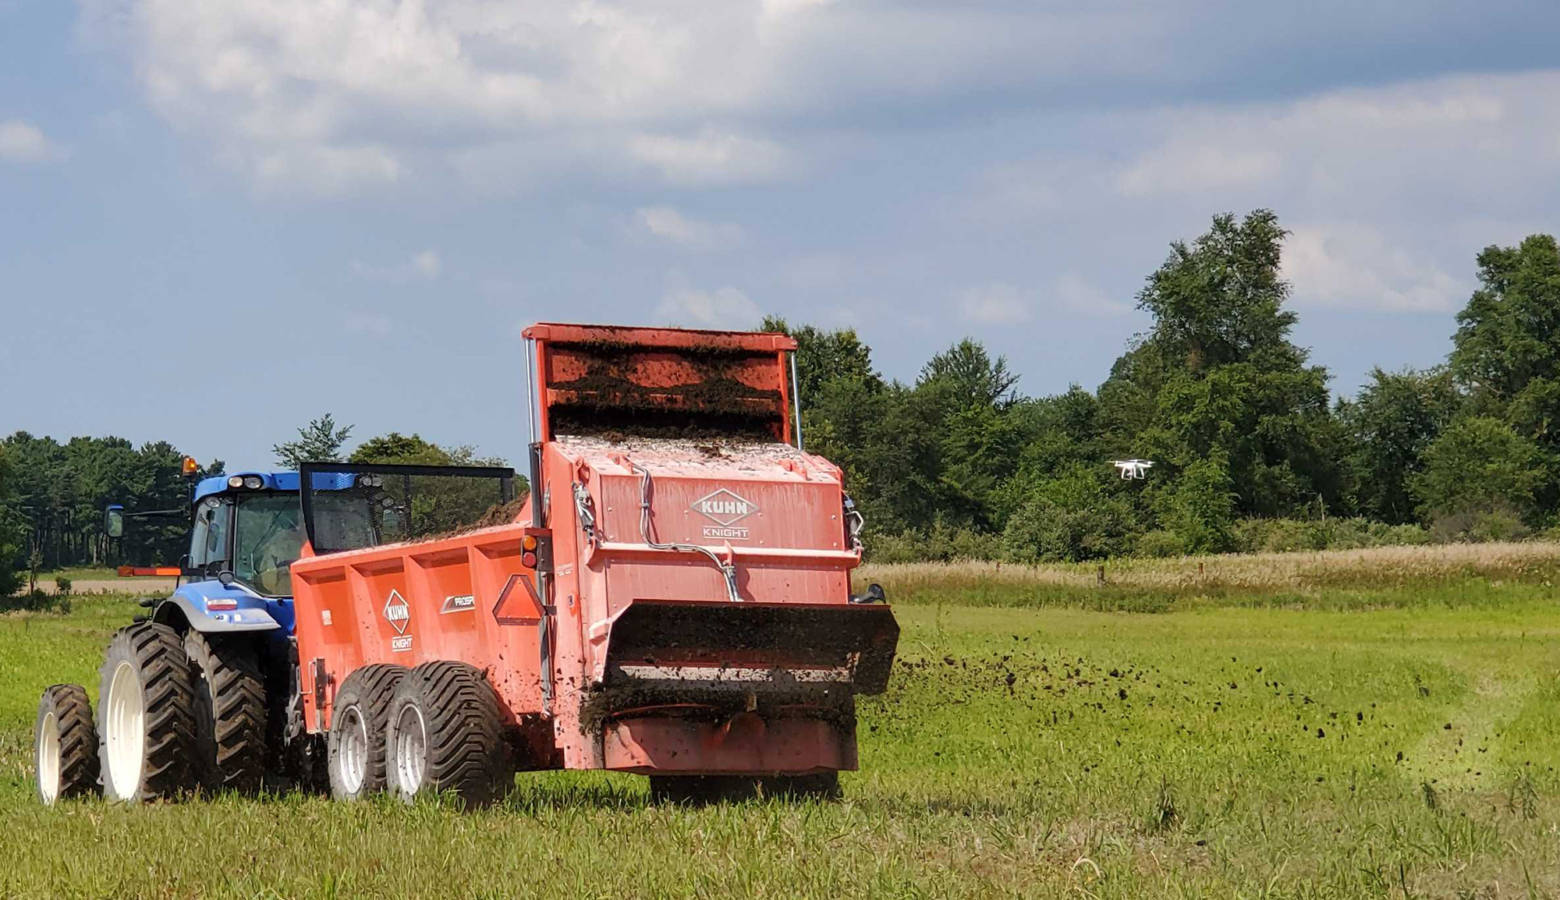 Companies demonstrate their solid manure spreaders out in the field to expo attendees. (Samantha Horton/IPB News)